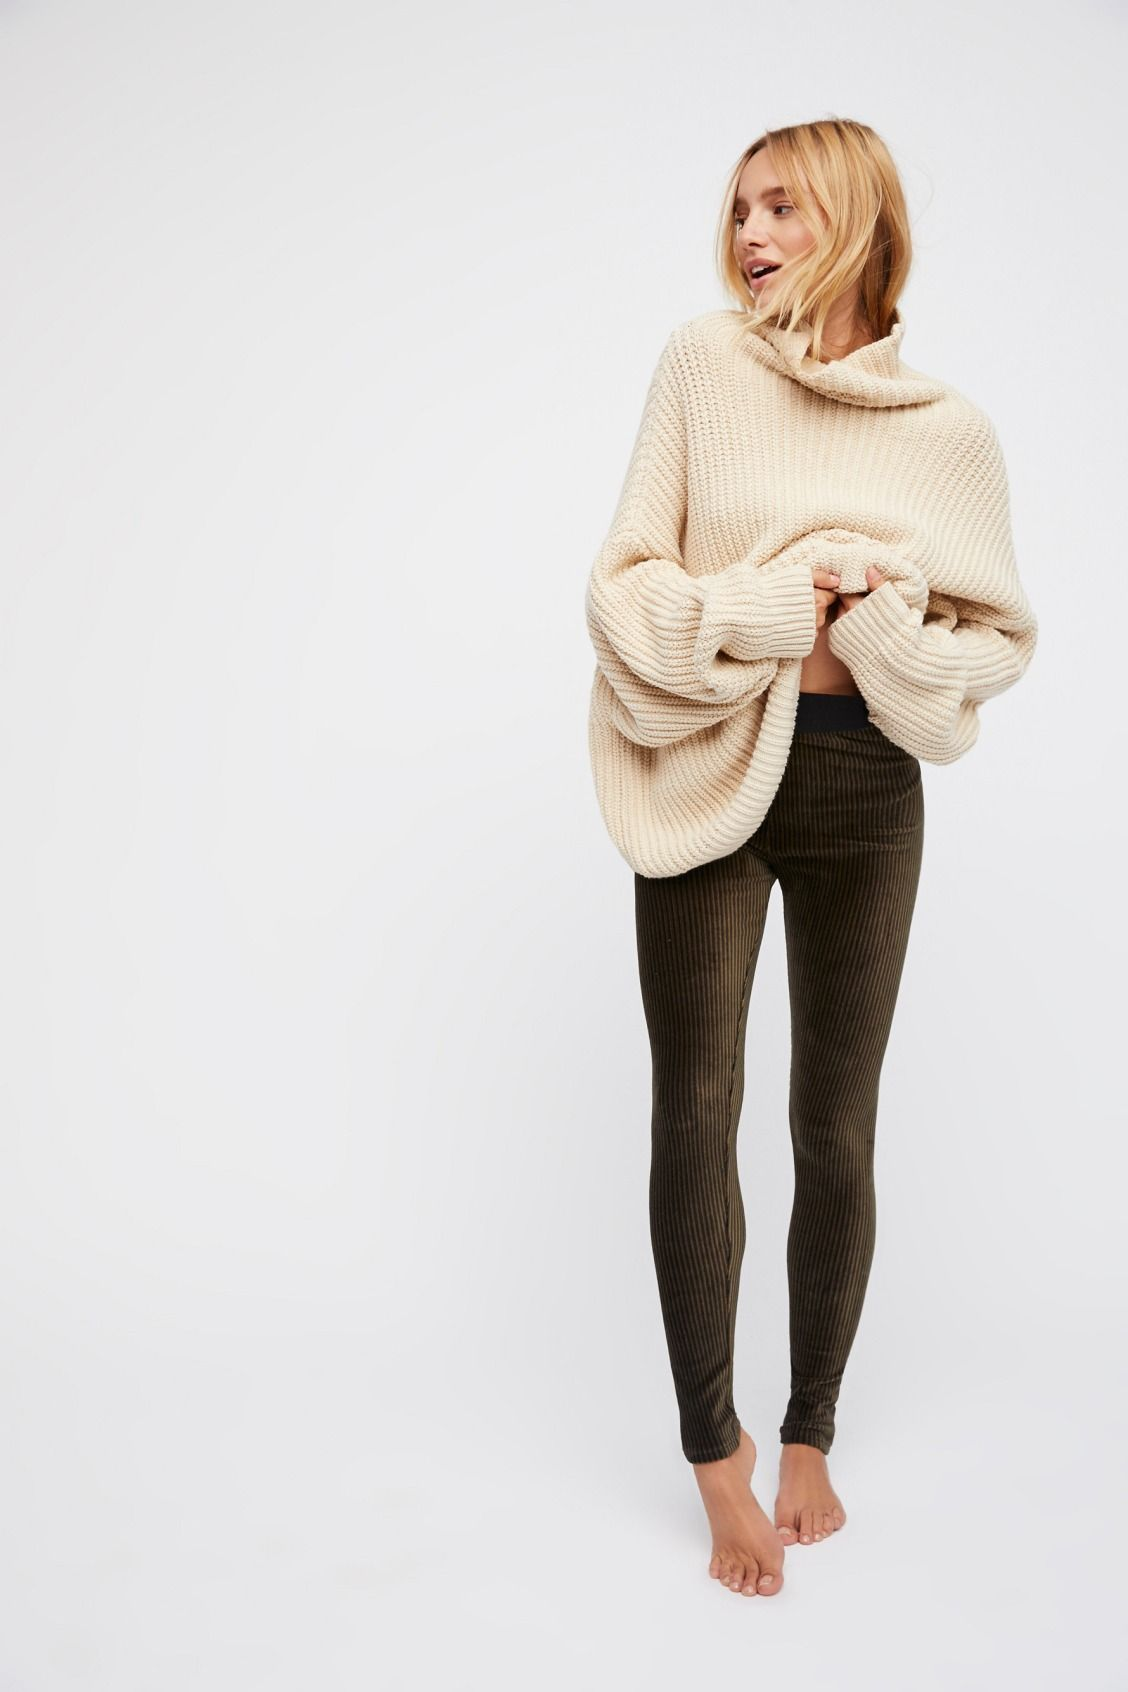 0293224b45 Army Combo Here We Go Striped Velvet Legging at Free People Clothing  Boutique